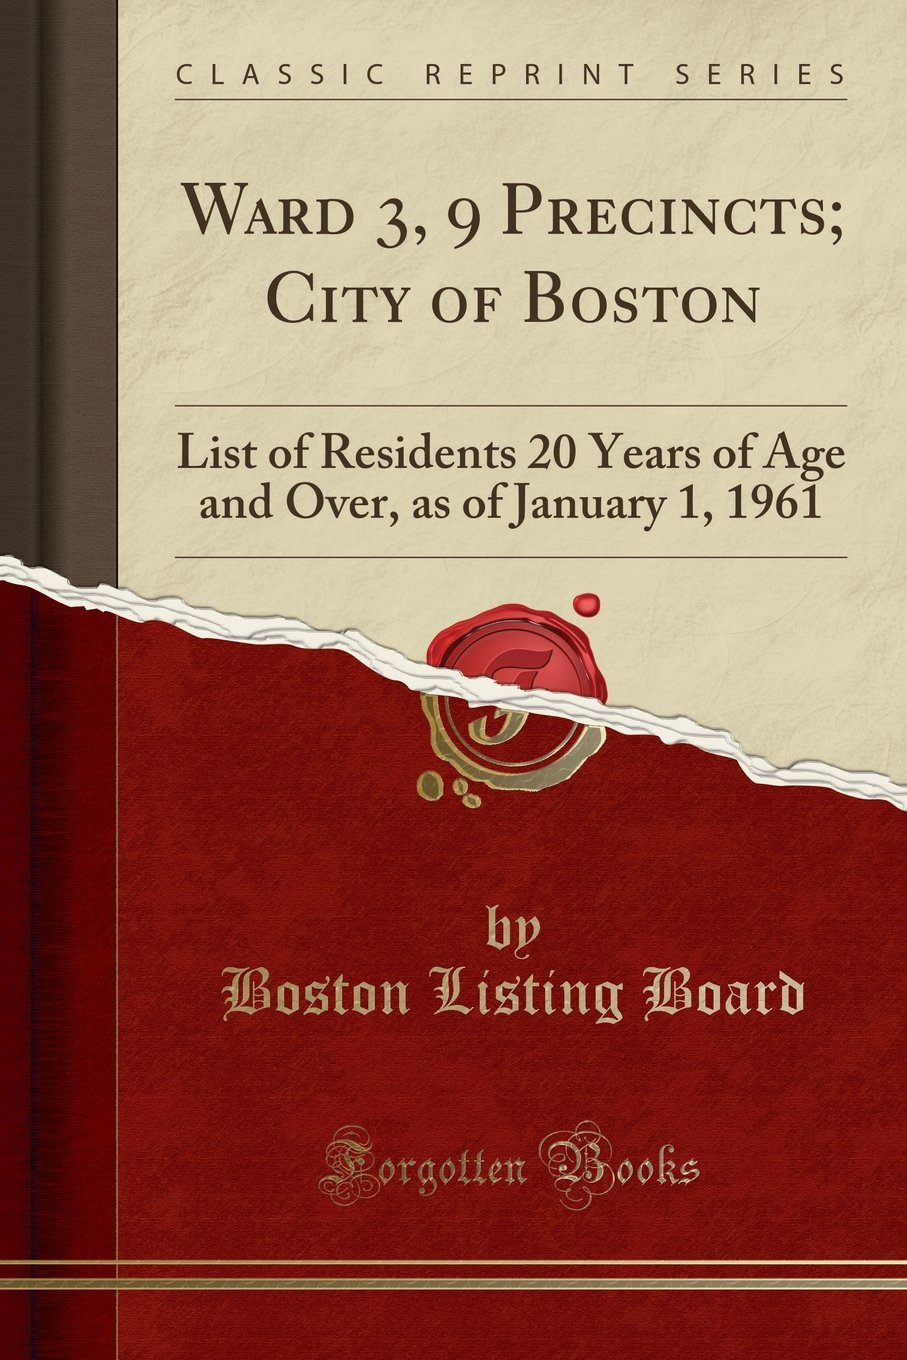 Read Online Ward 3, 9 Precincts; City of Boston: List of Residents 20 Years of Age and Over, as of January 1, 1961 (Classic Reprint) ebook